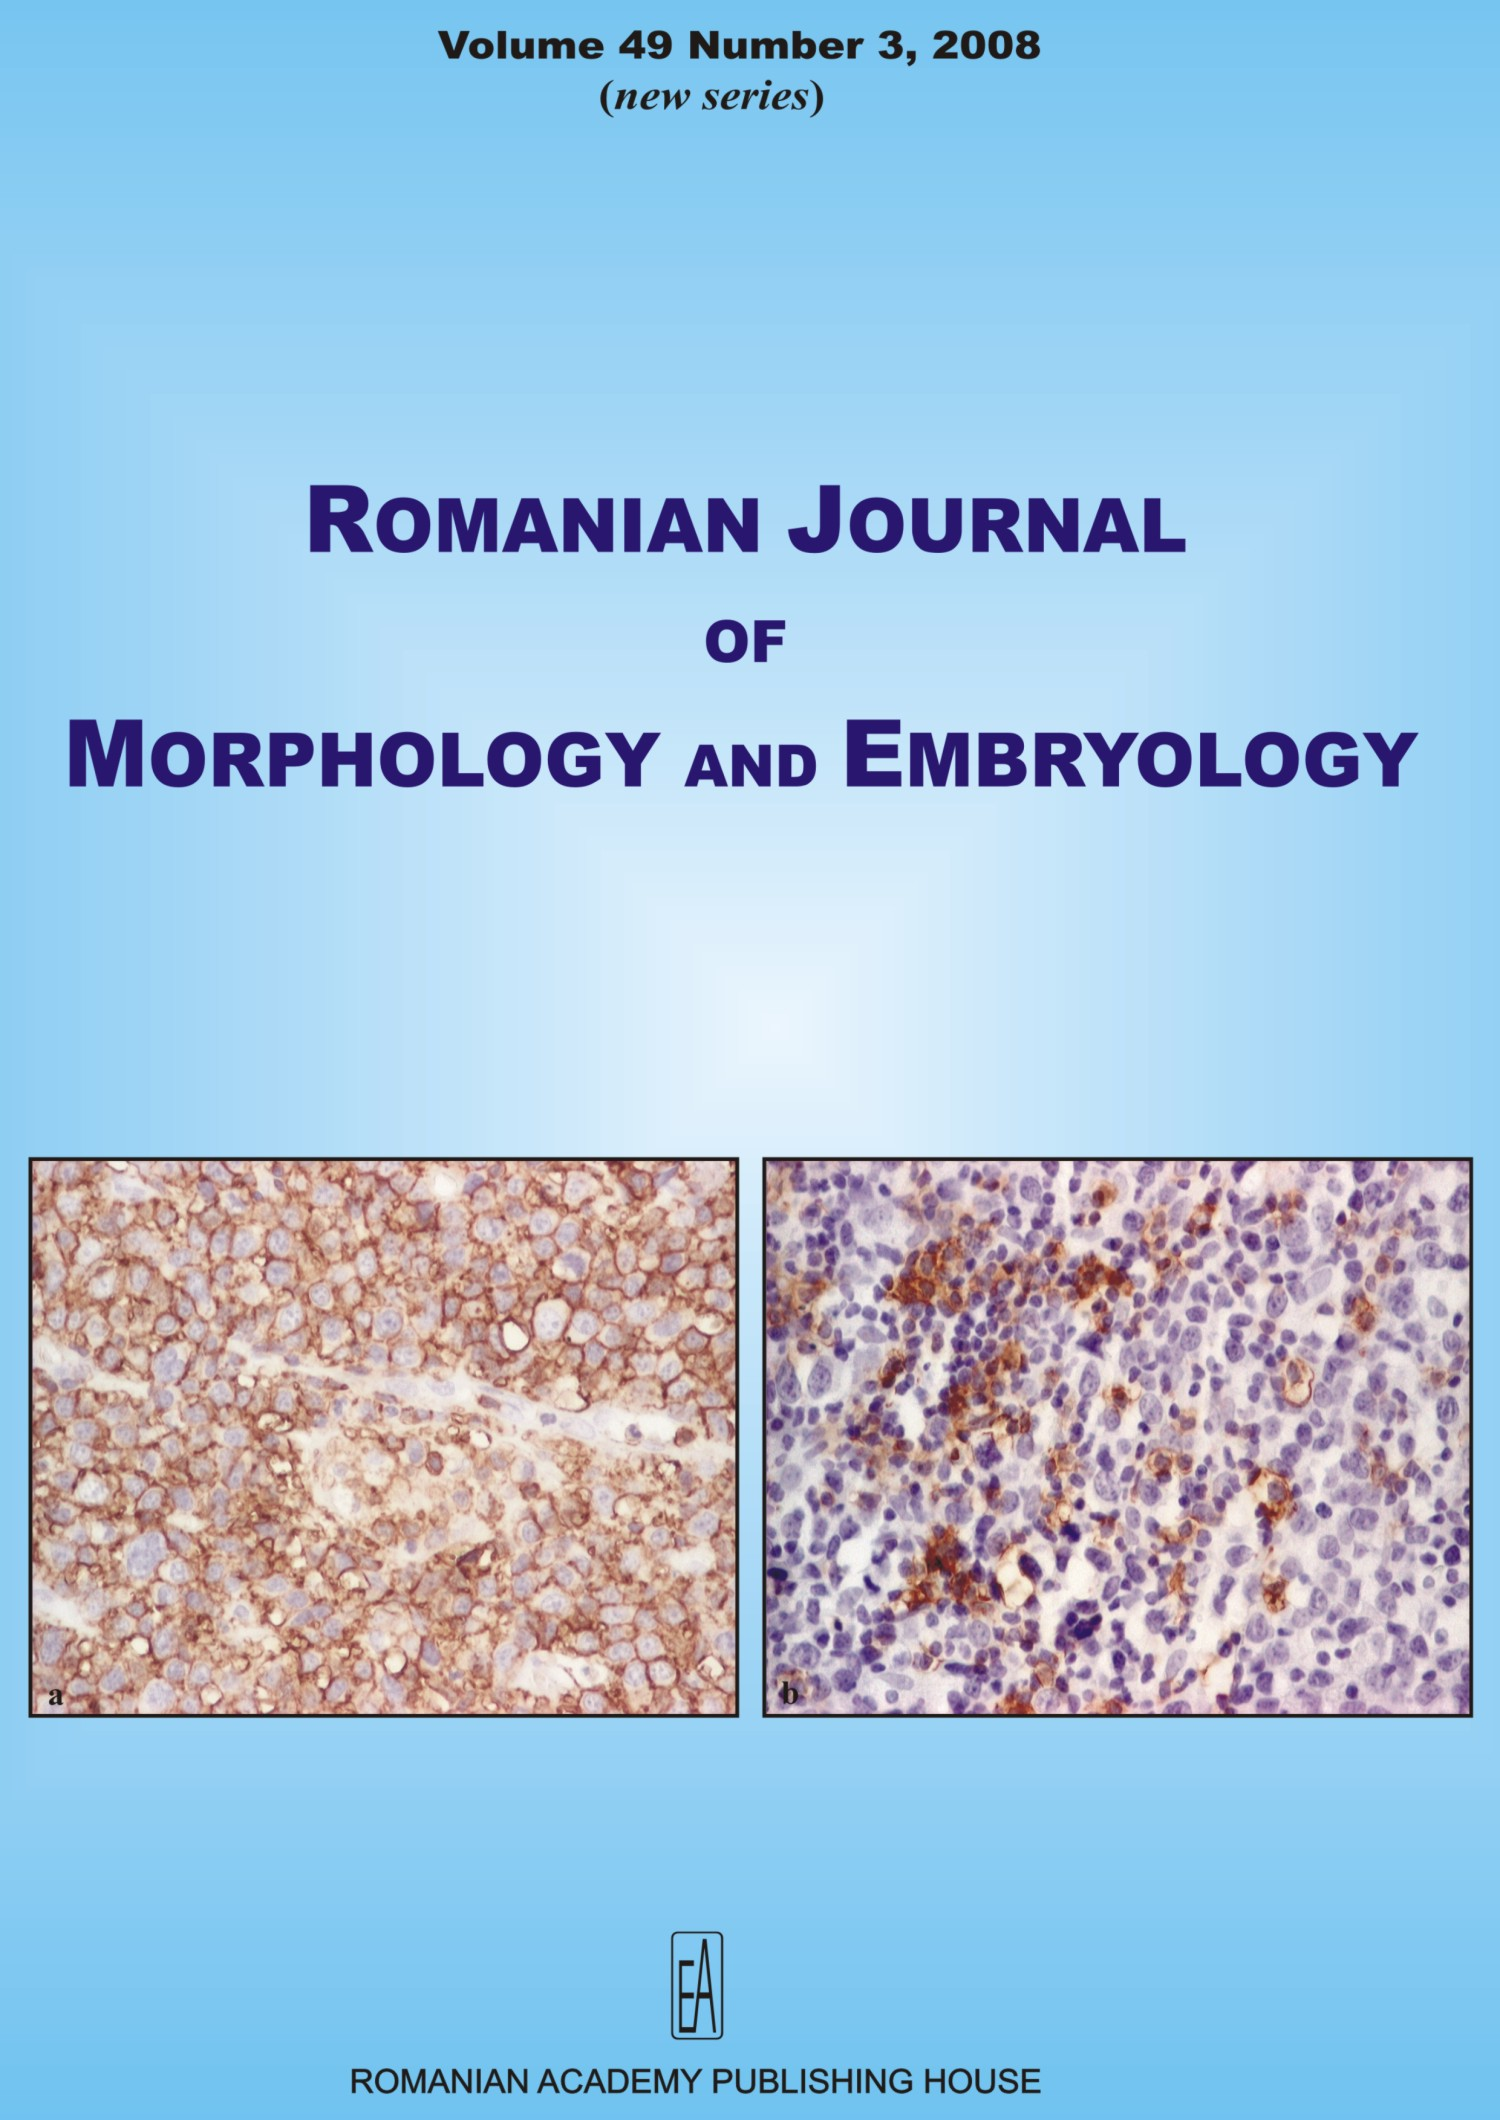 Romanian Journal of Morphology and Embryology, vol. 49 no. 3, 2008